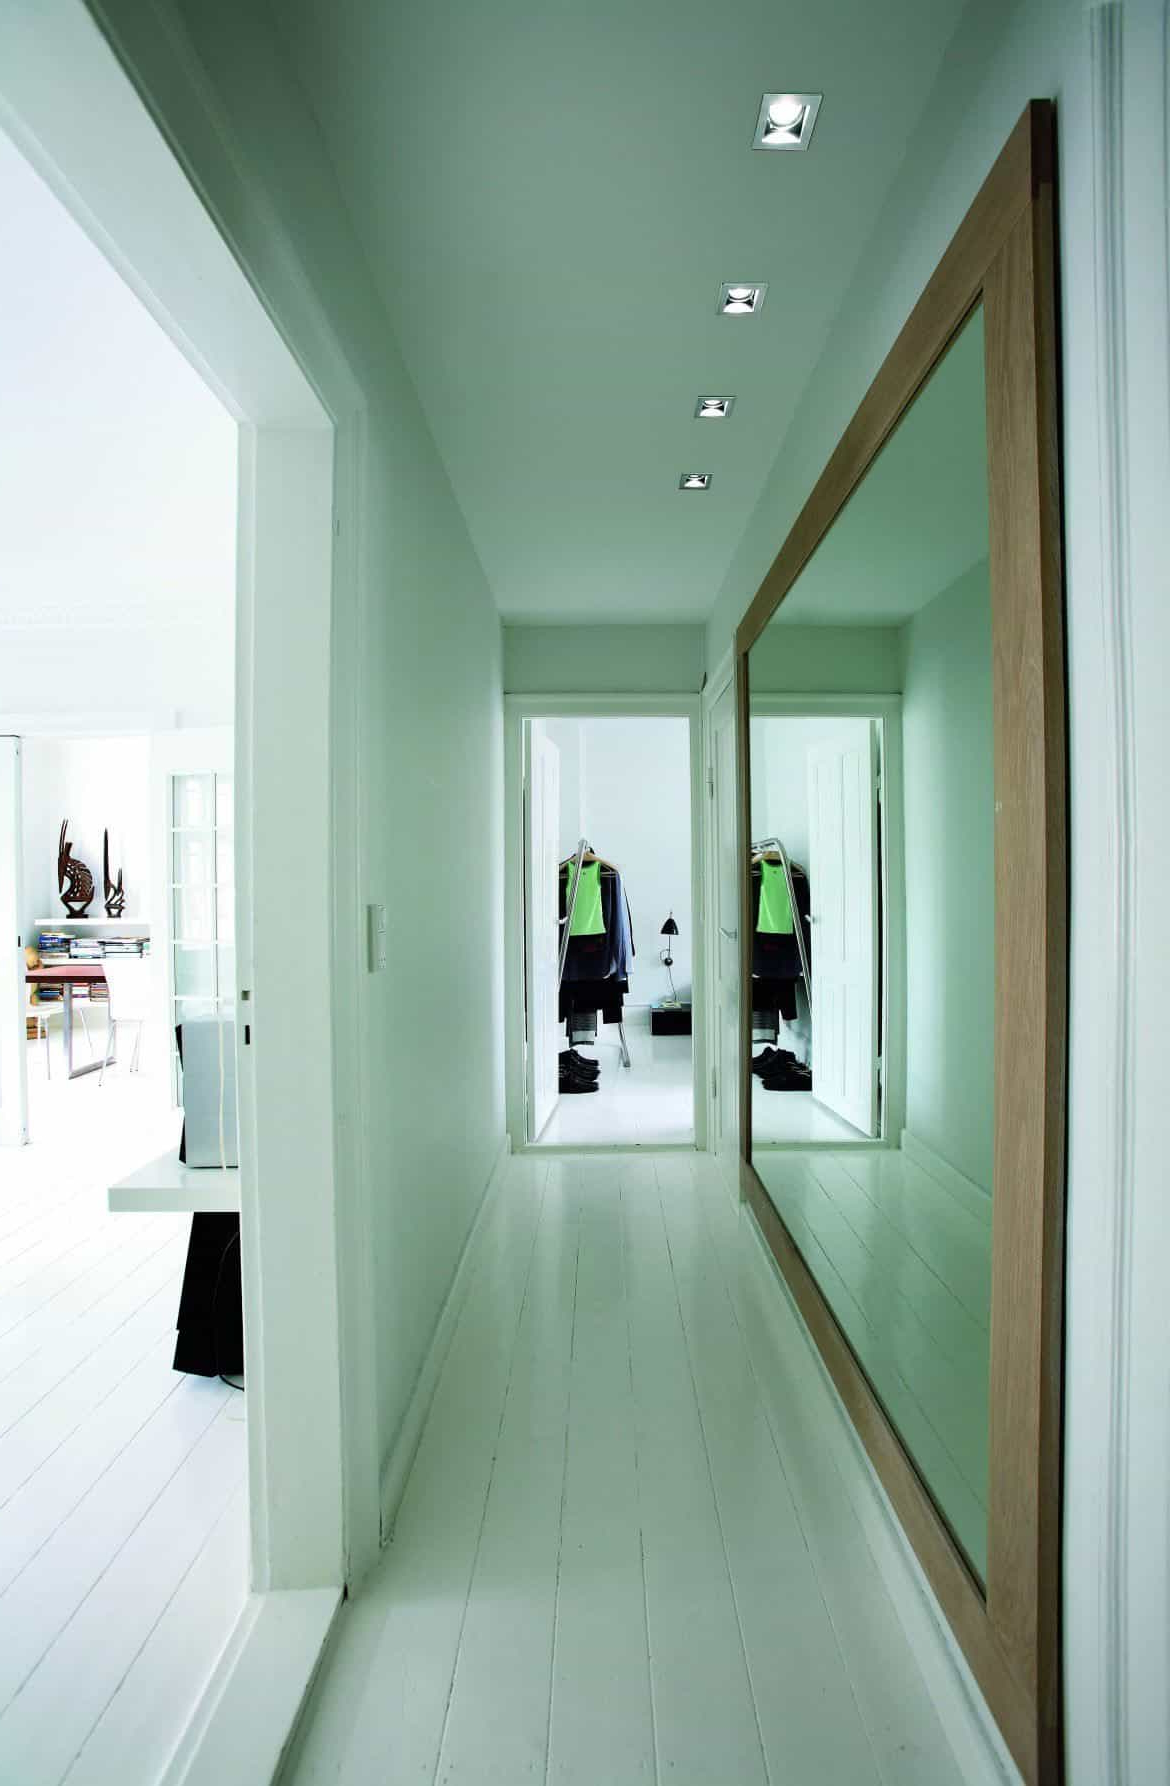 Large Framed Wall Mirrors With Regard To Preferred Hallway With Large Framed Wall Mirror In White Walls – Hallway (View 14 of 20)